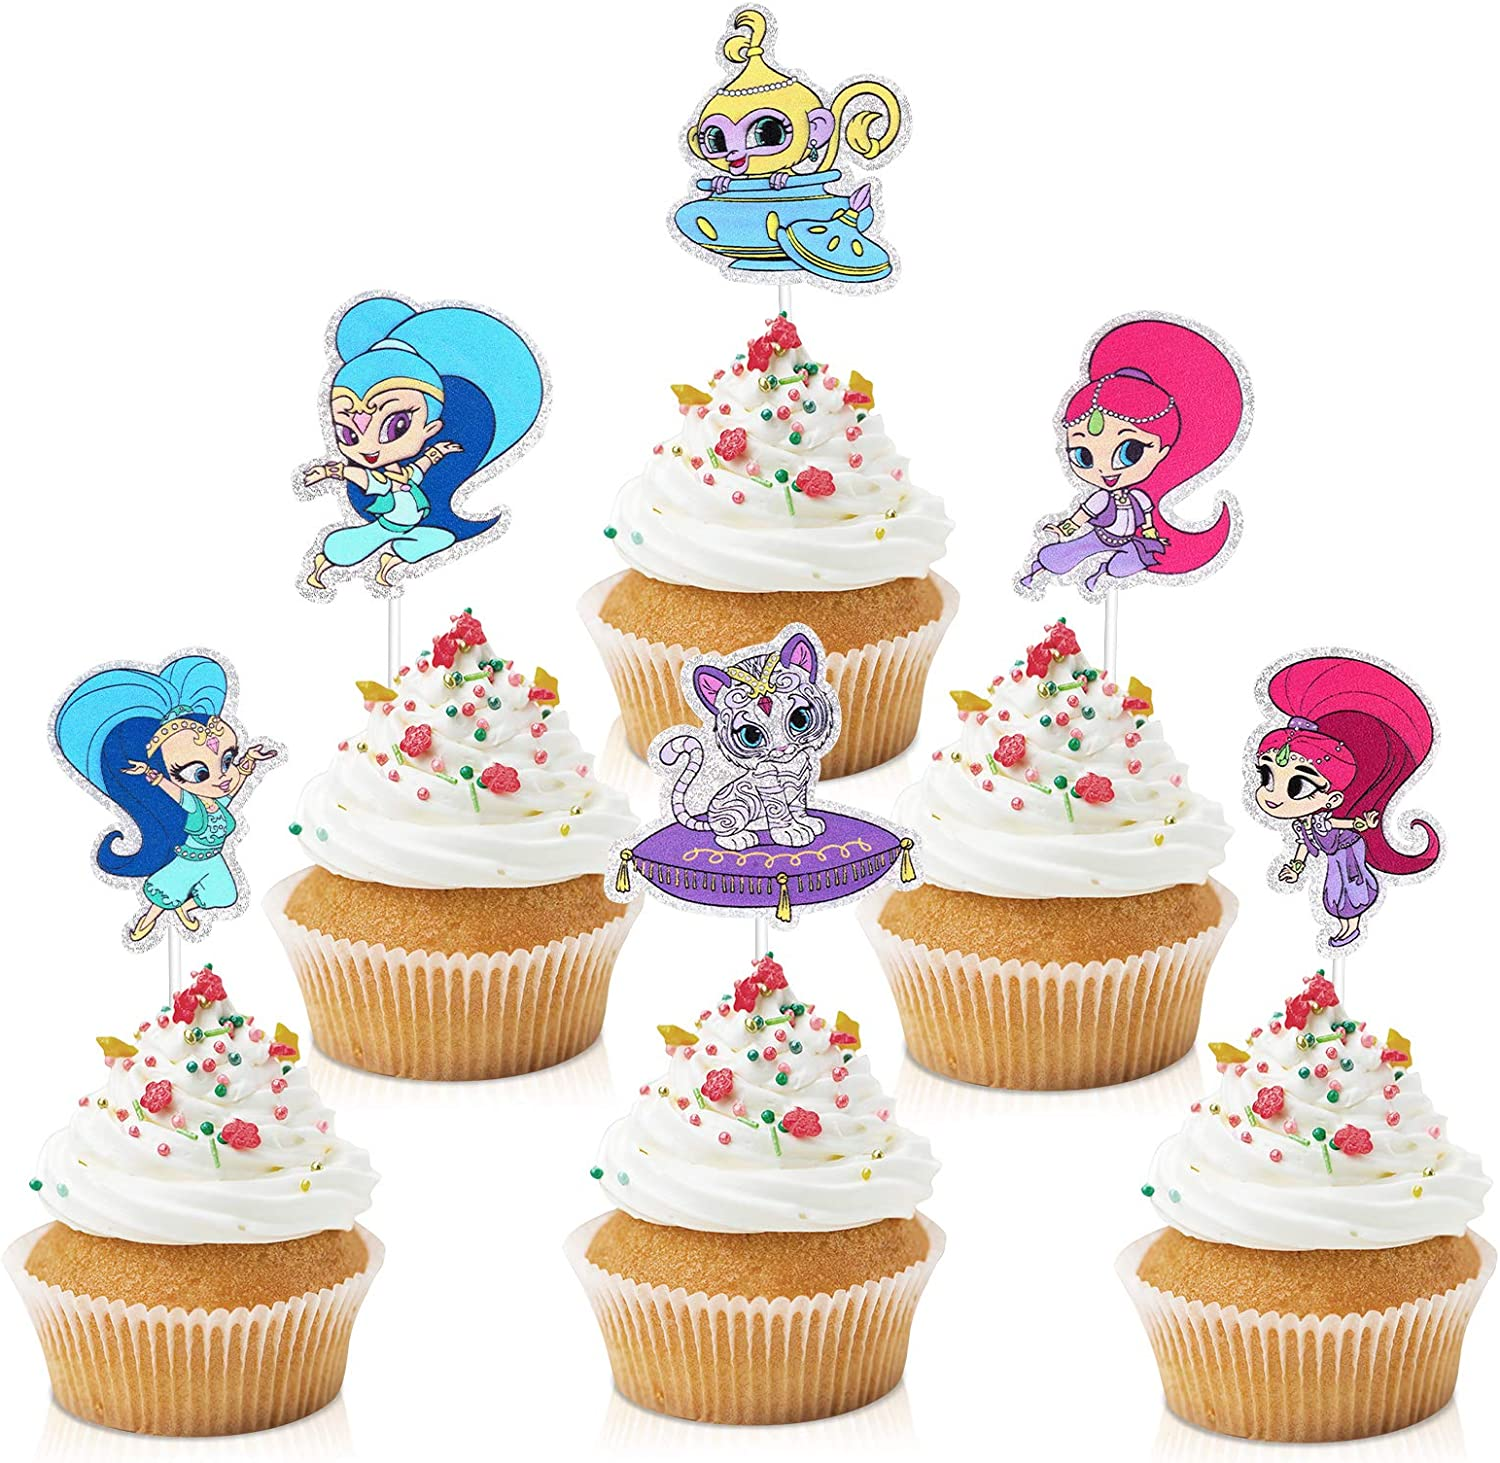 18pcs Shimmer And Shine Cupcake Toppers Pink Girls Birthday Party Decorations Cartoon Party Glitter Shimmer Shine Genius Cupcake Supplies